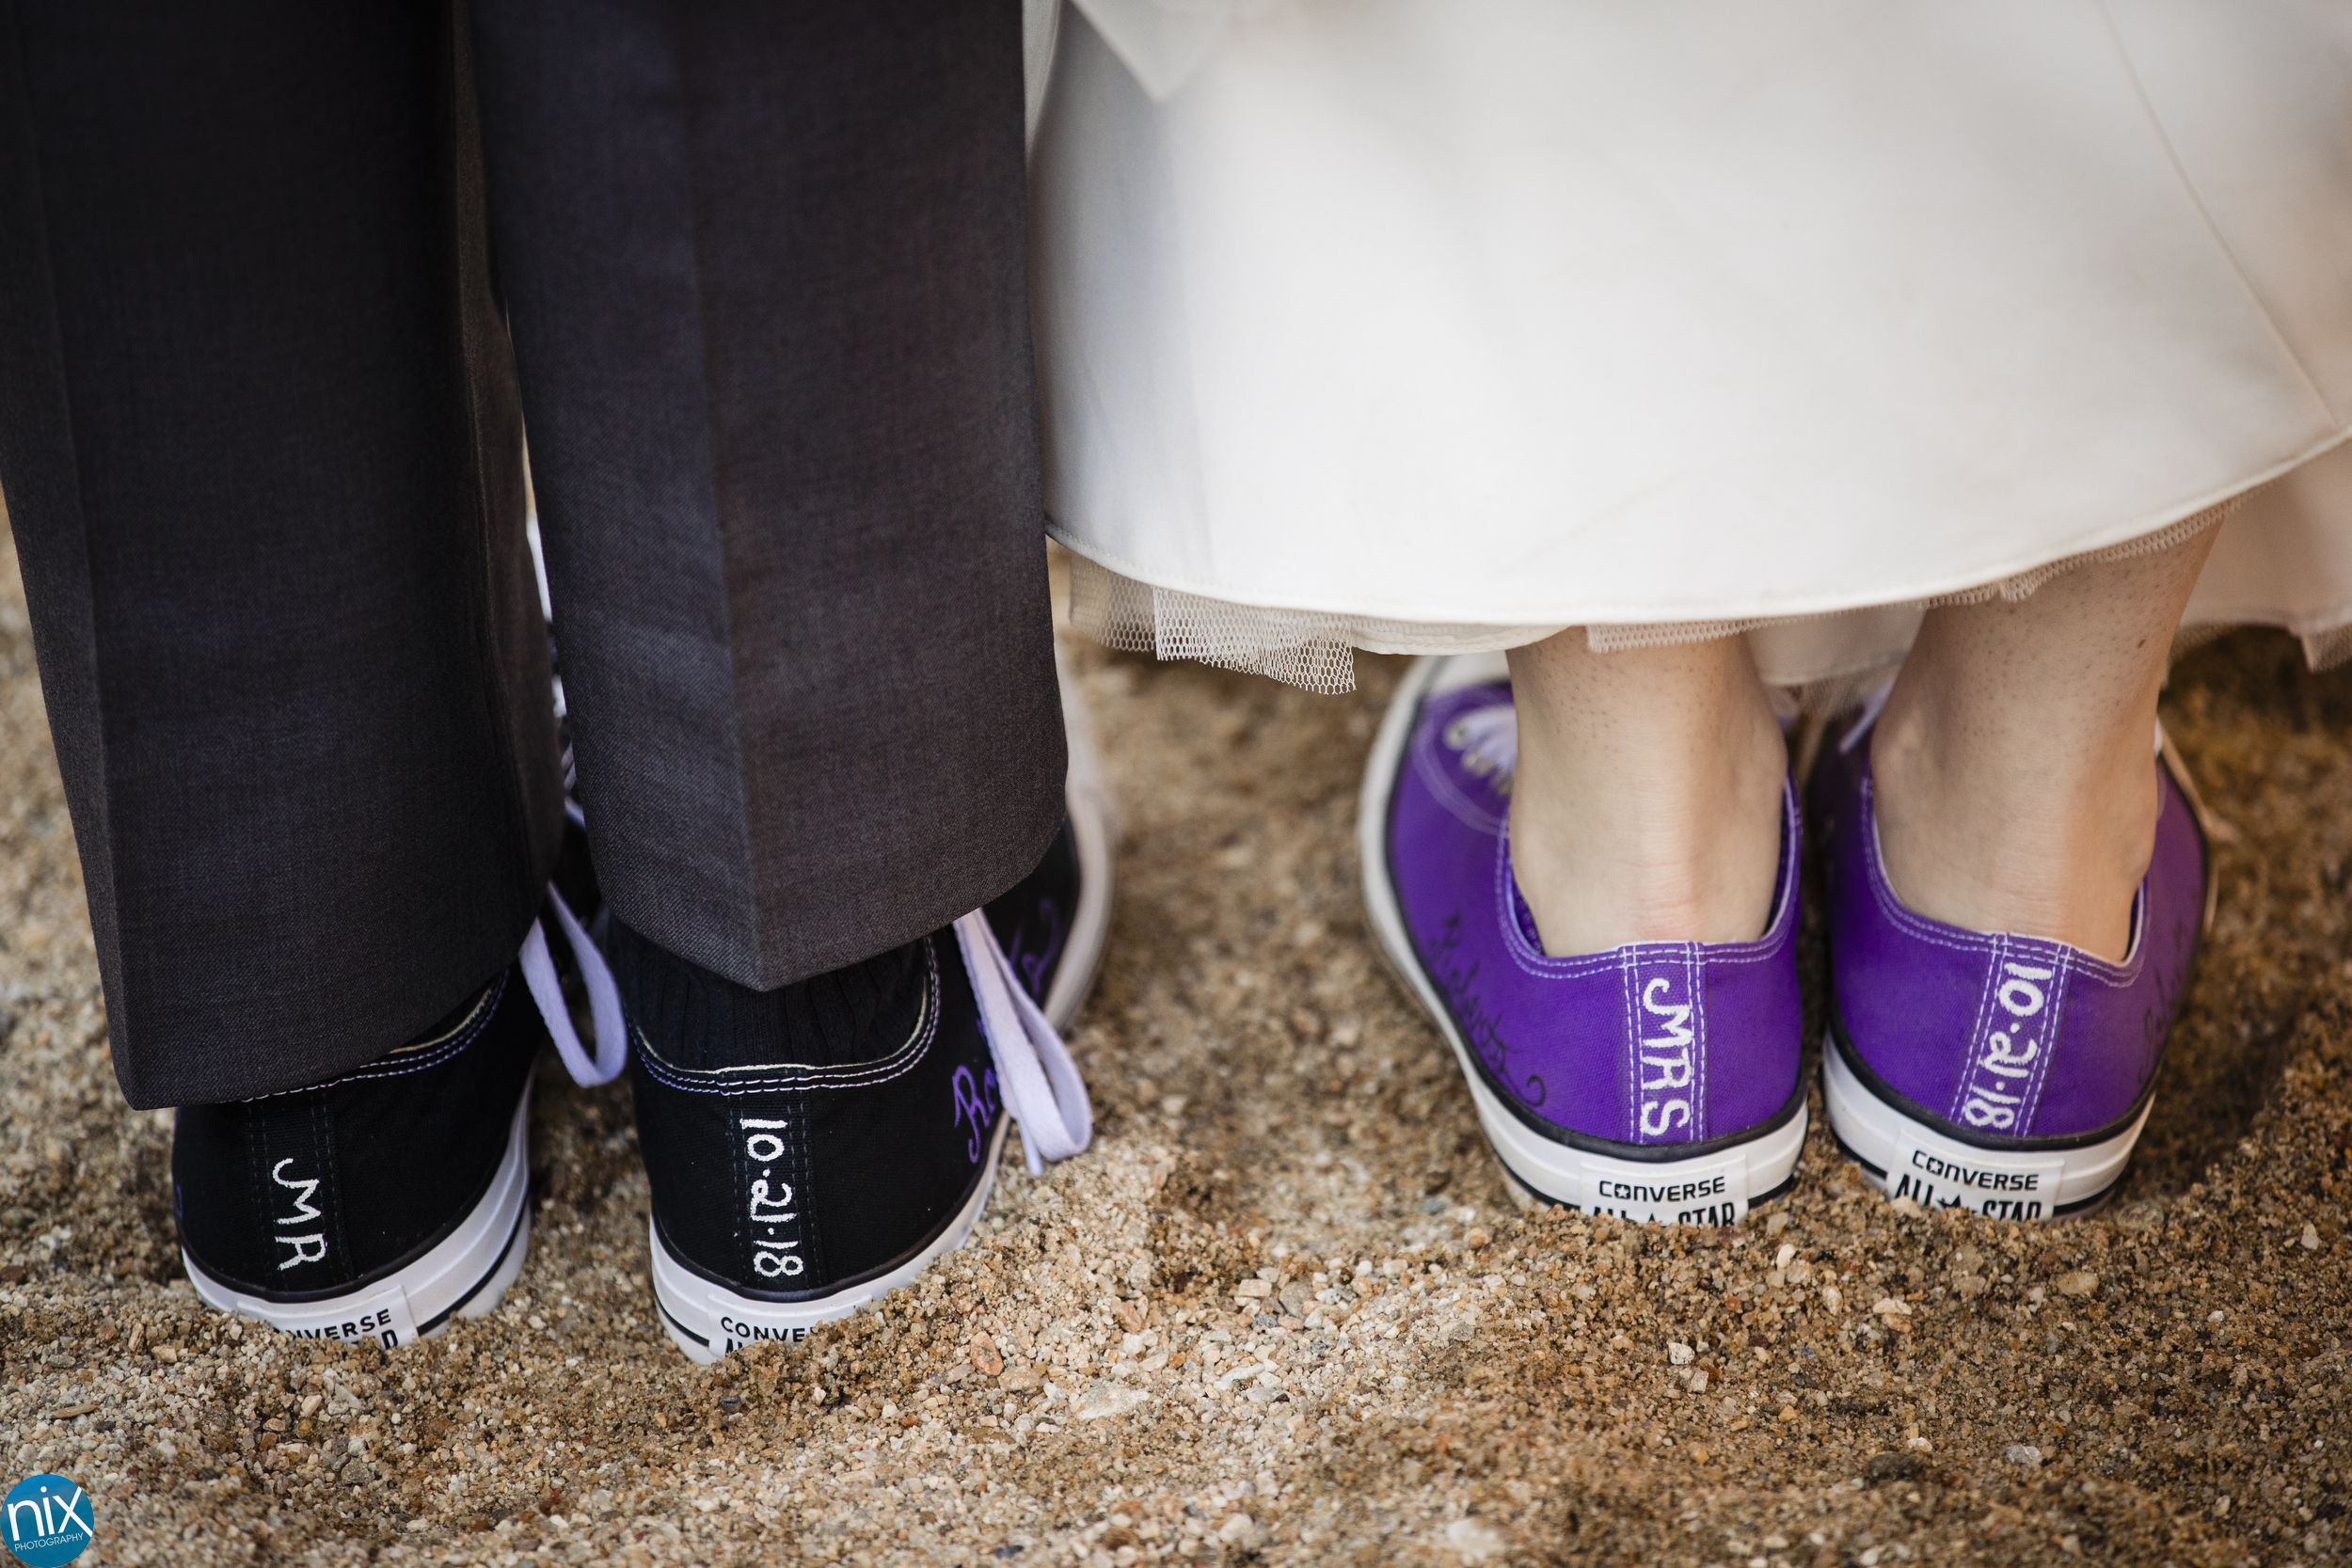 custom wedding day chuck taylors.jpg